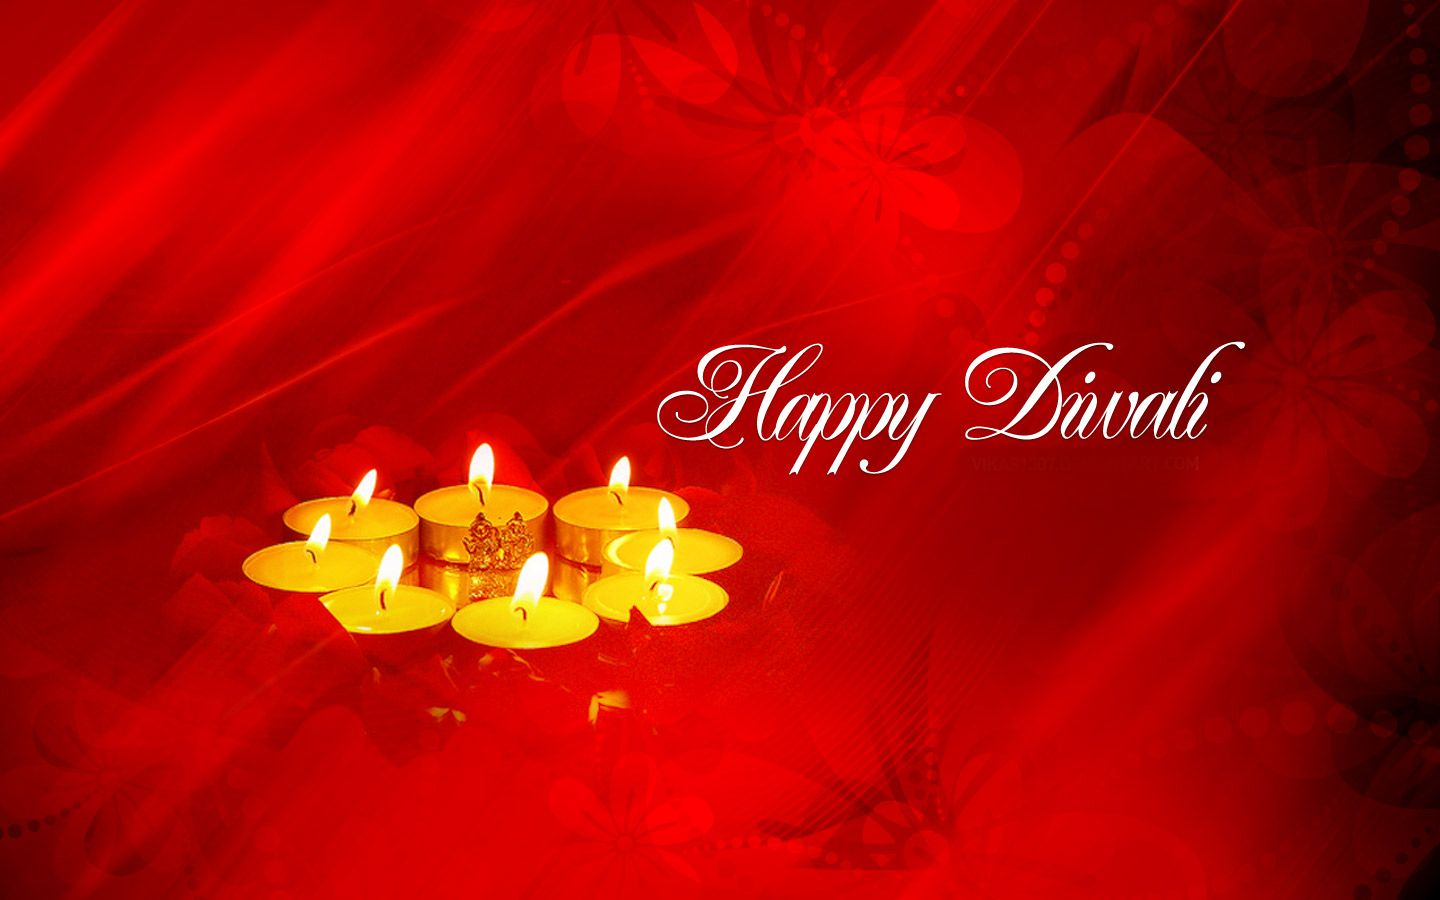 Simple Wallpaper High Quality Diwali - 2d2bbced4ae4f944d769fc3efca3130f  Perfect Image Reference_829736.jpg